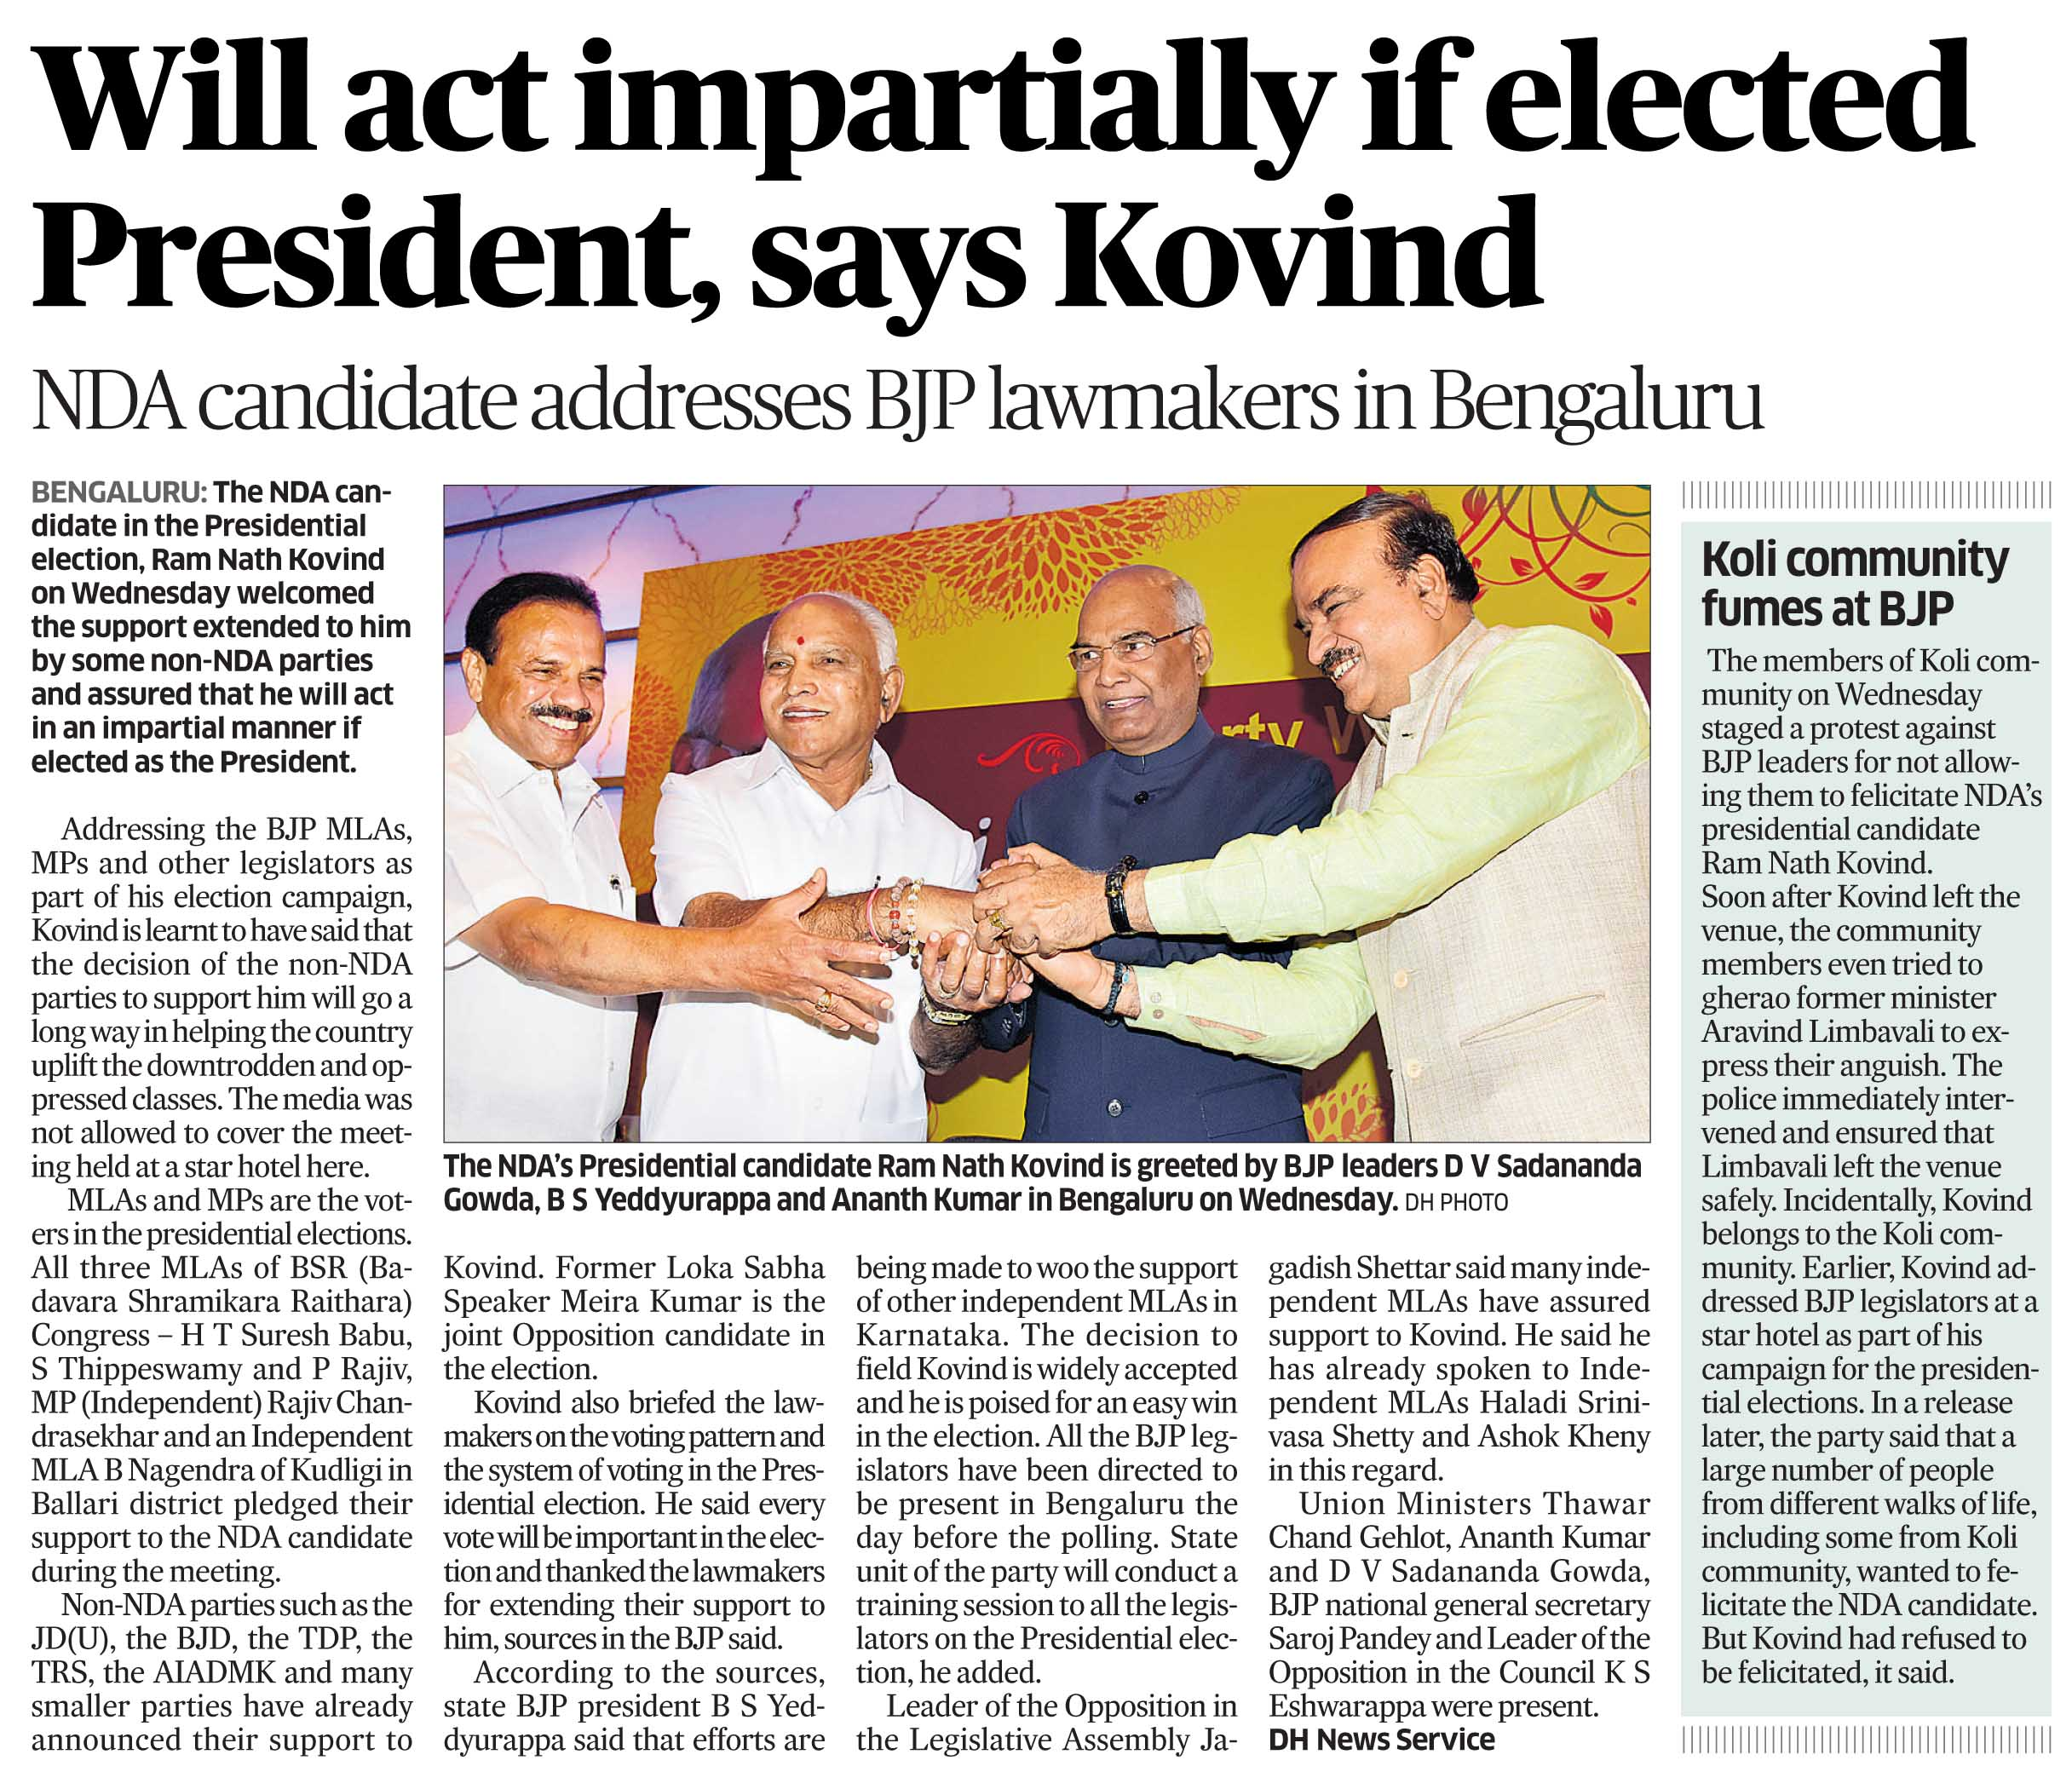 will act impartially if elected president, says Kovind